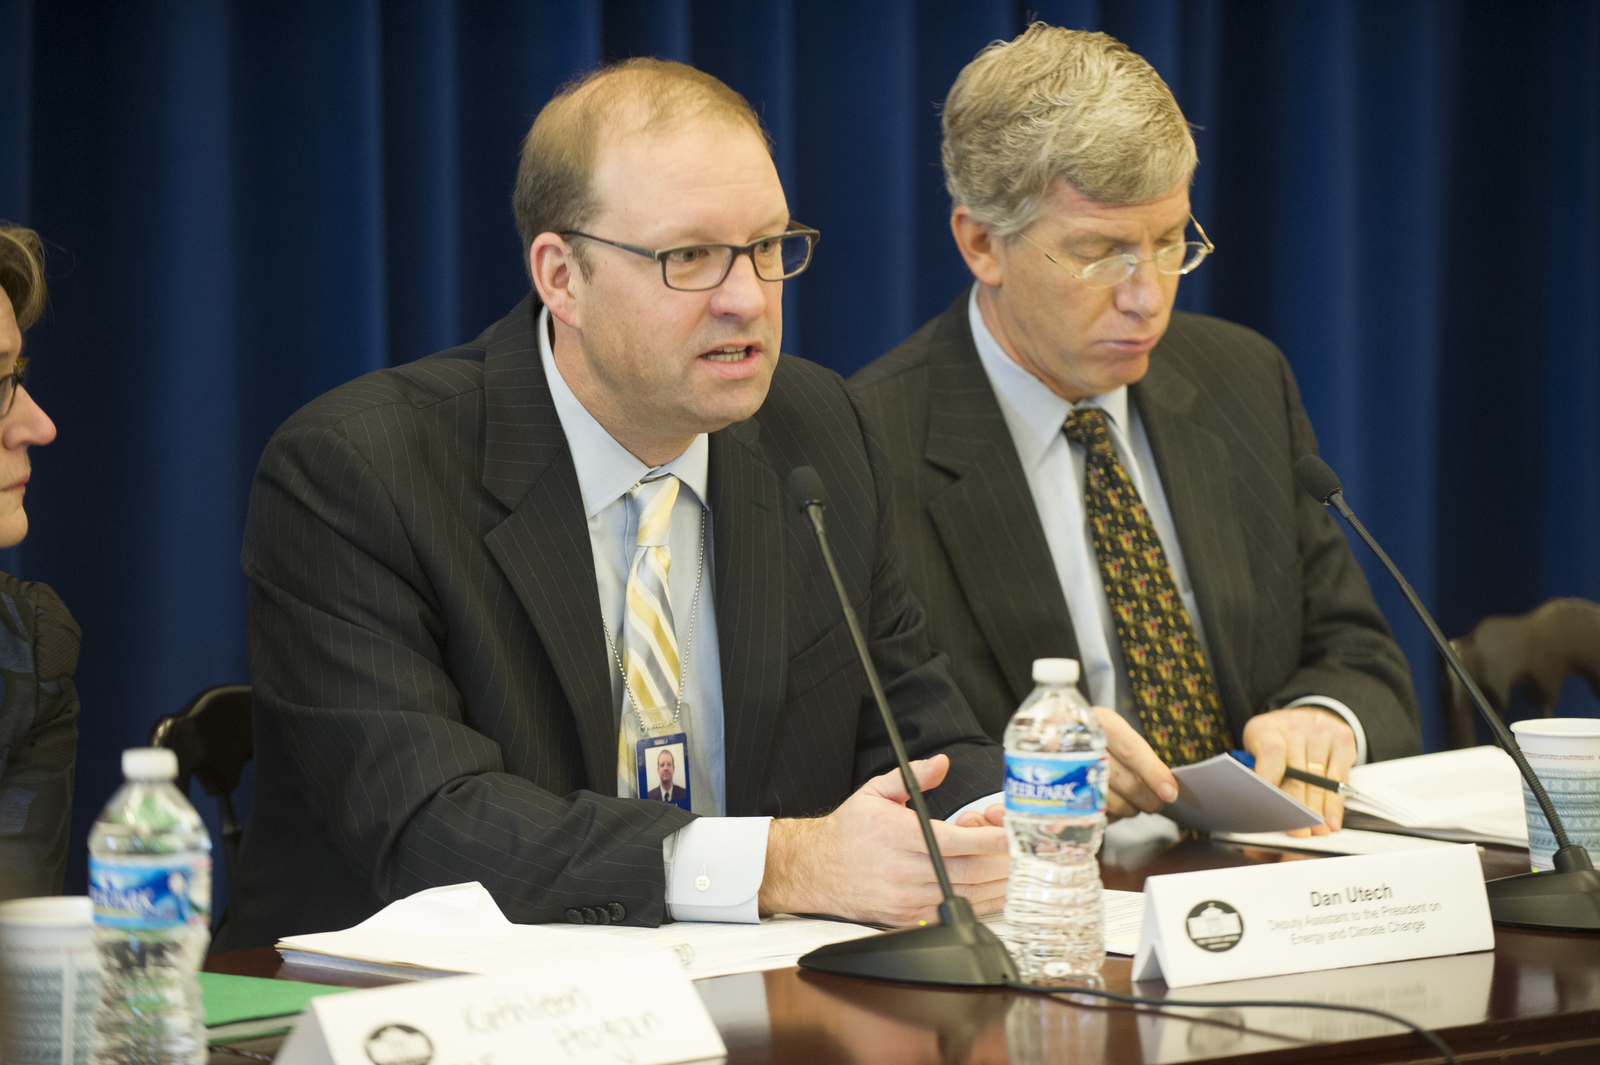 [Gathering of HUD, Department of Energy, White House, and other officials to announce expansion of the President's] Better Buildings Challenge [to cover multifamily housing, as well as the launch of the Better Buildings Accelerators to support state and local government-led efforts to cut energy waste and eliminate market and technical barriers to greater building energy efficiency. HUD Secretary Shaun Donovan joined Energy Deputy Secretary Daniel Poneman, White House Council on Environmental Quality Chair Nancy Sutley, and Special Assistant to the President on Energy and Climate Change, Dan Utech, among other participants.]